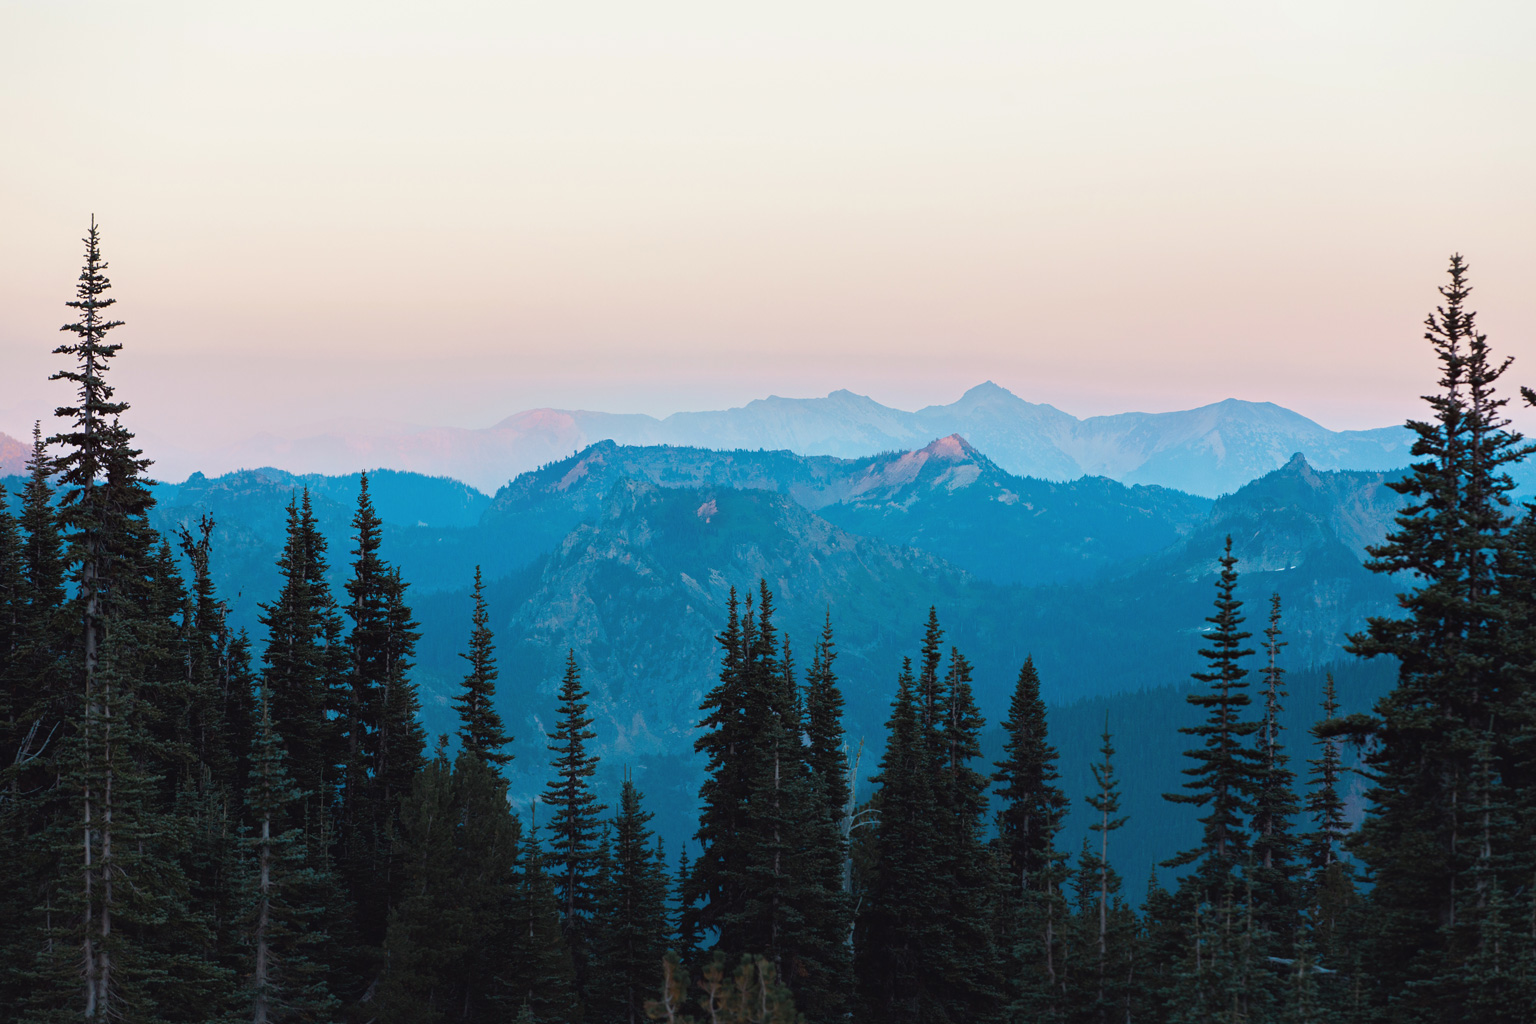 CindyGiovagnoli_Mount_Rainier_National_Park_Washington-016.jpg